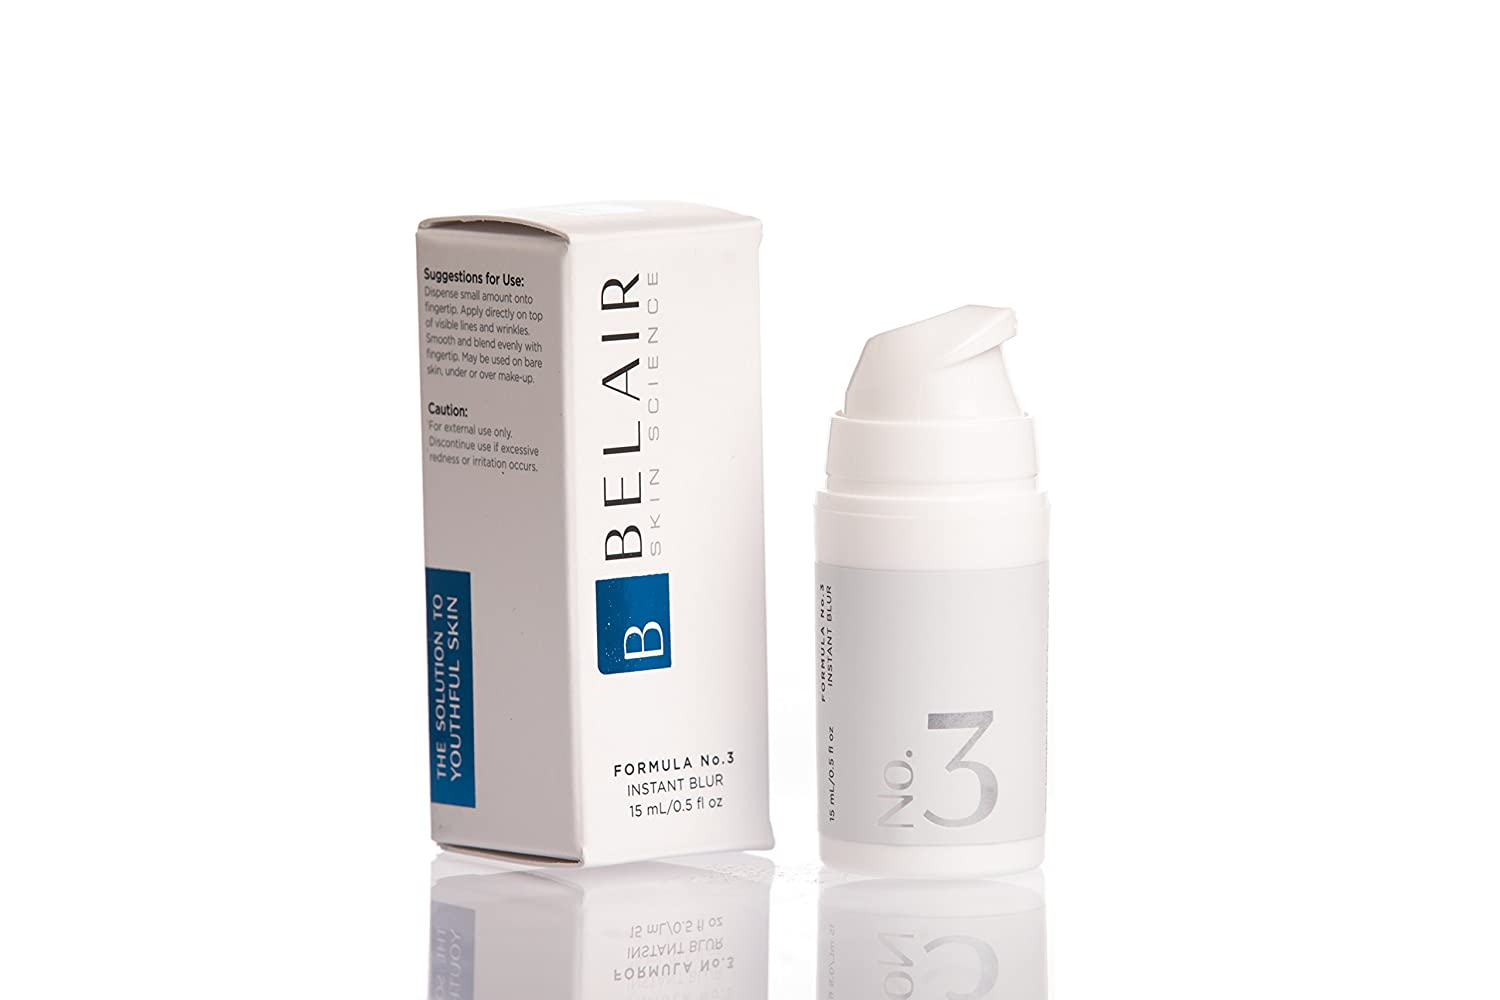 Bel Air Skin Science Instant Blur Face Primer Pore Eraser, Skin Smoother, Makeup Primer Anti Aging Cream 0.5 Ounce